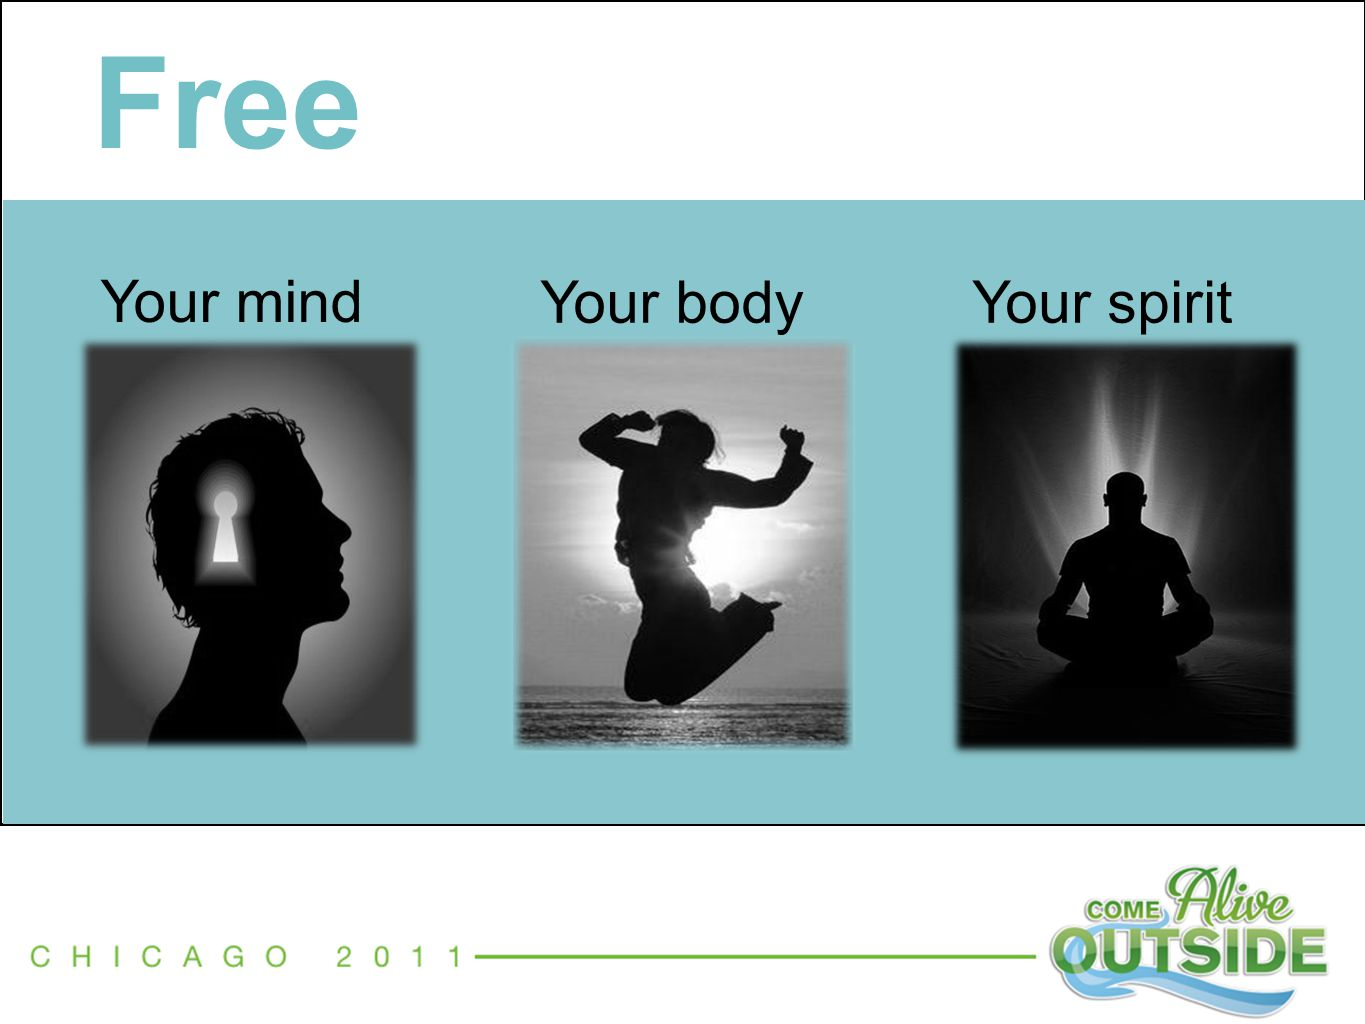 Free Your mind Your bodyYour spirit